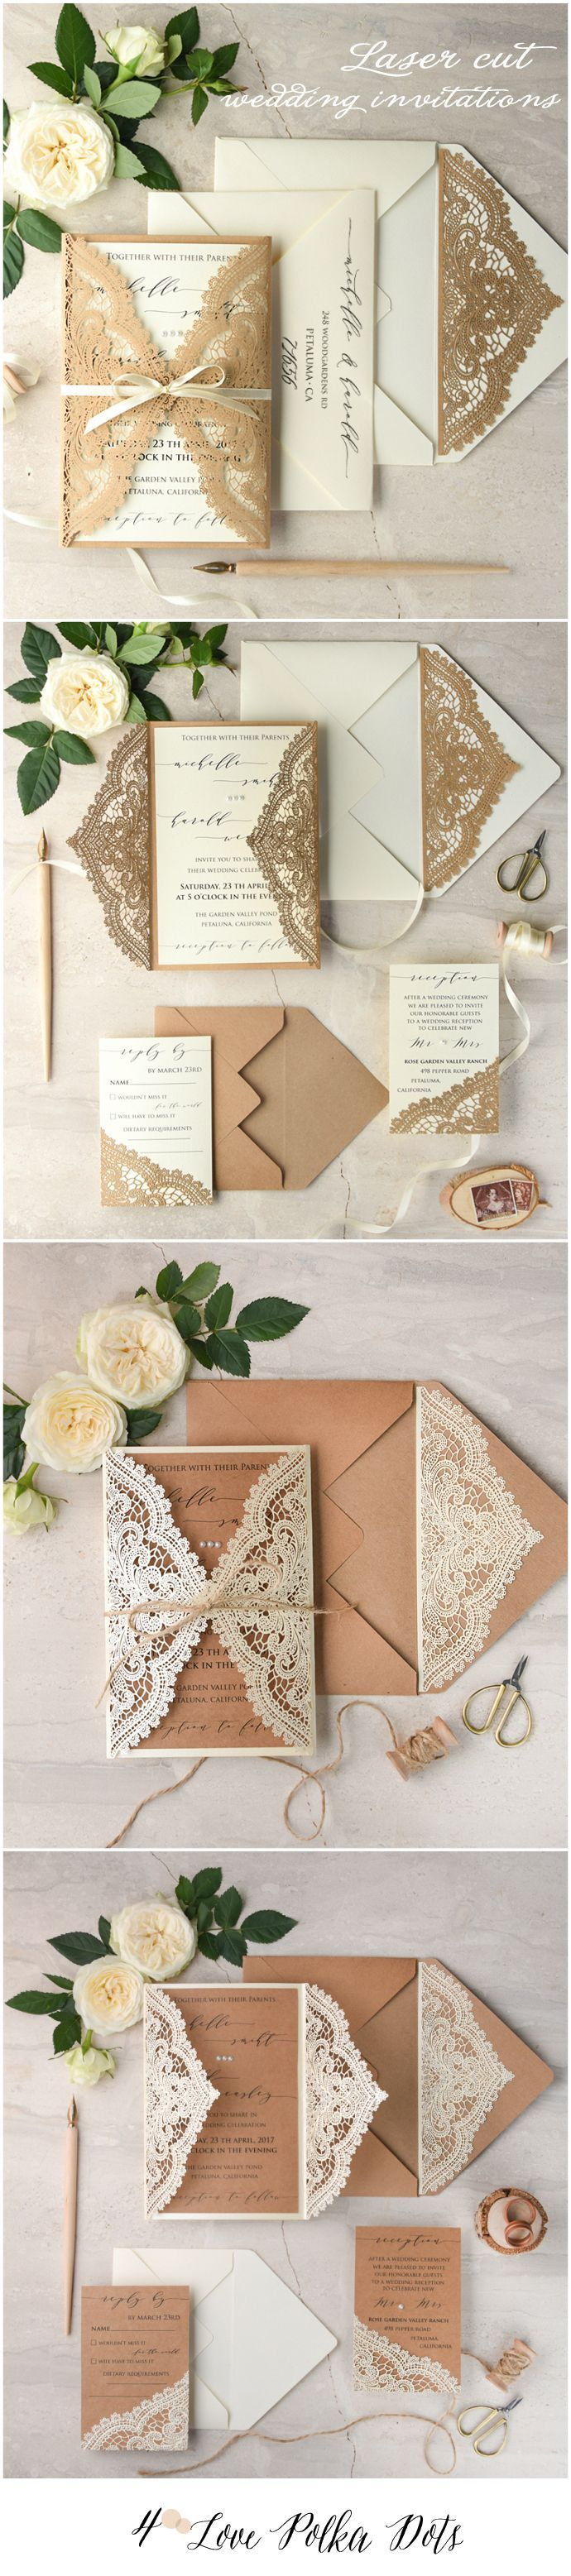 laser cut lace wedding invitations weddinginvitations 1093